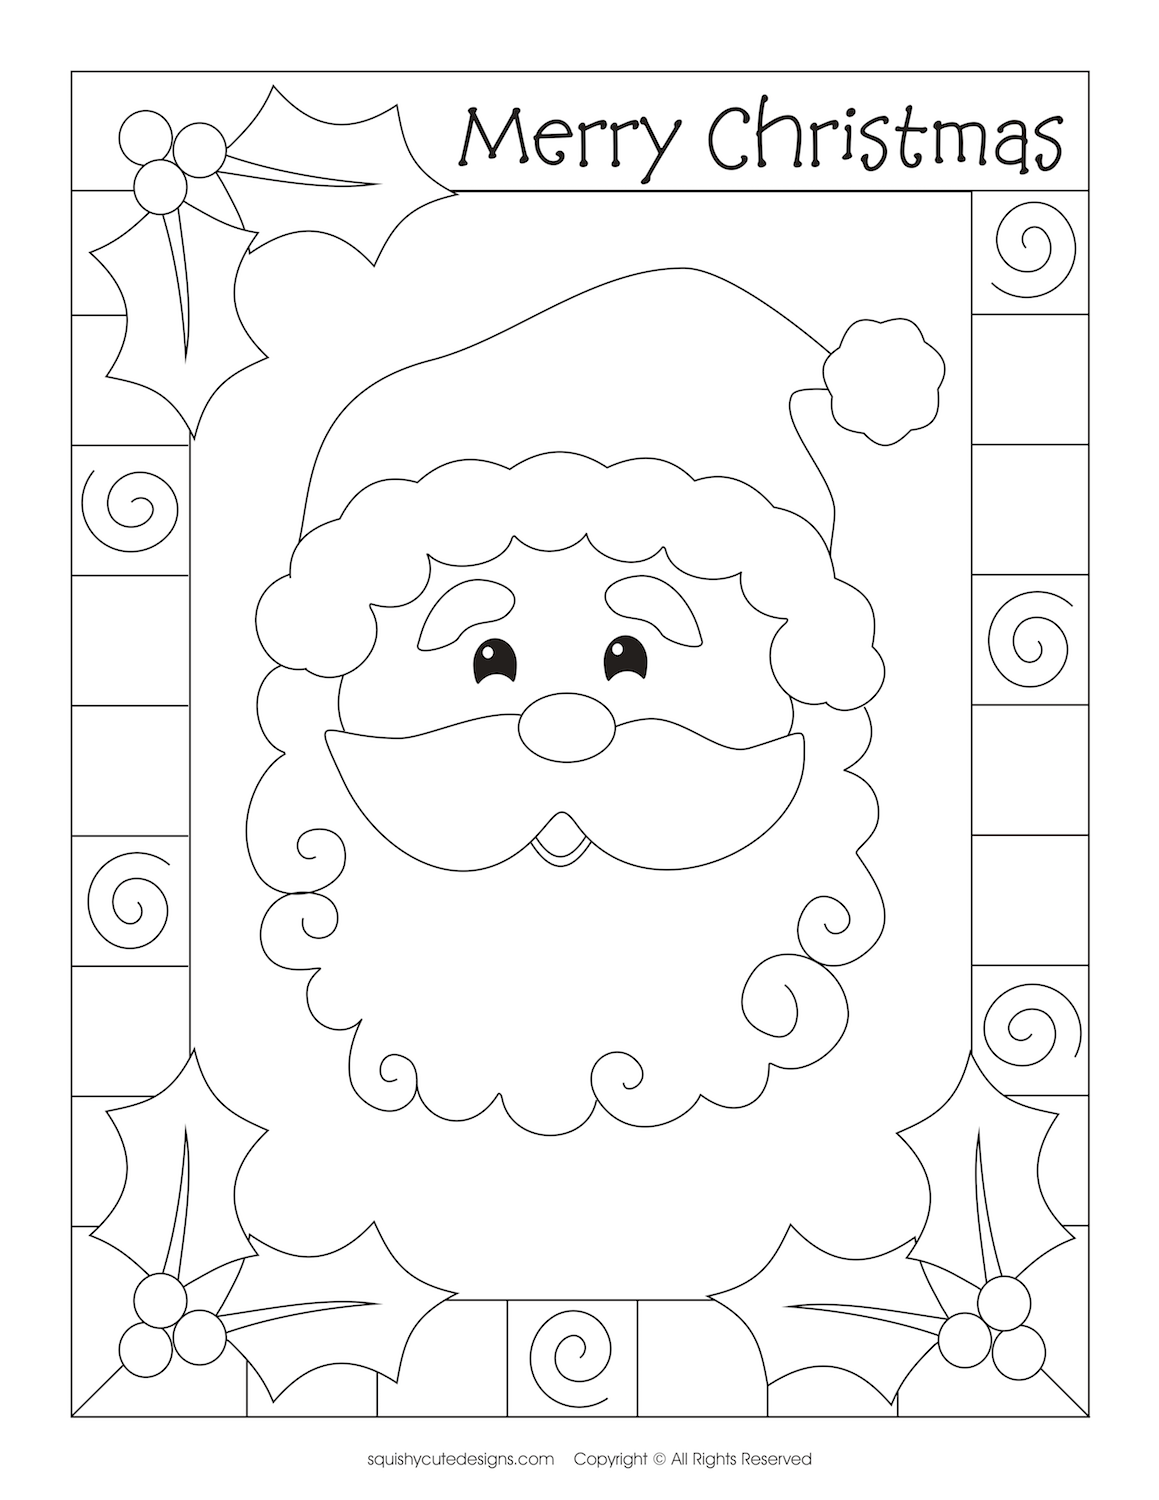 Christmas Coloring Pages | Pinterest | Celebrating christmas, Word ...